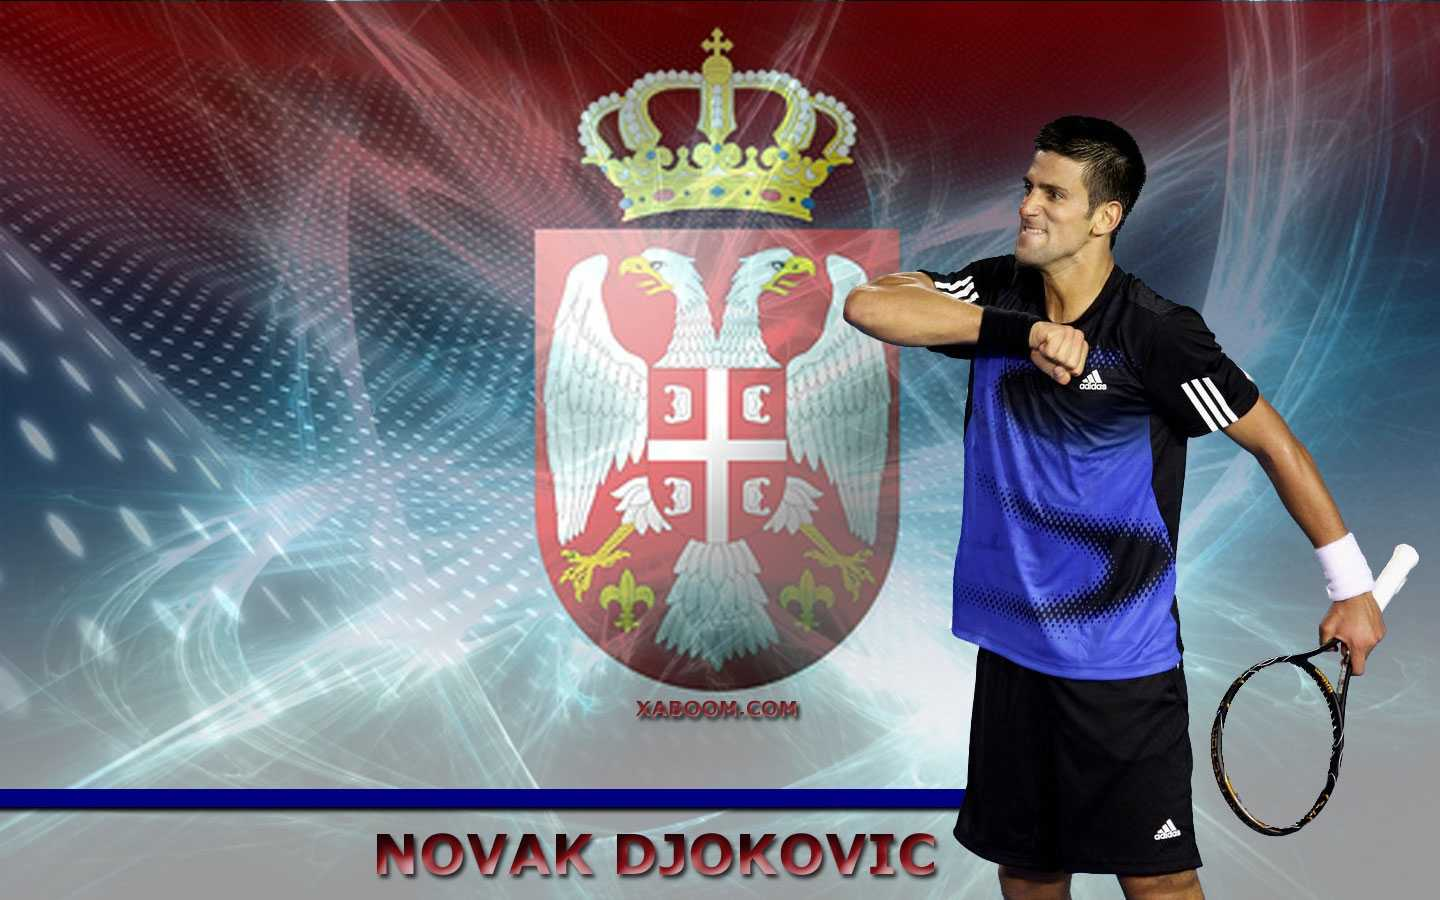 Novak Djokovic Wallpaper - Wide Wallpapers